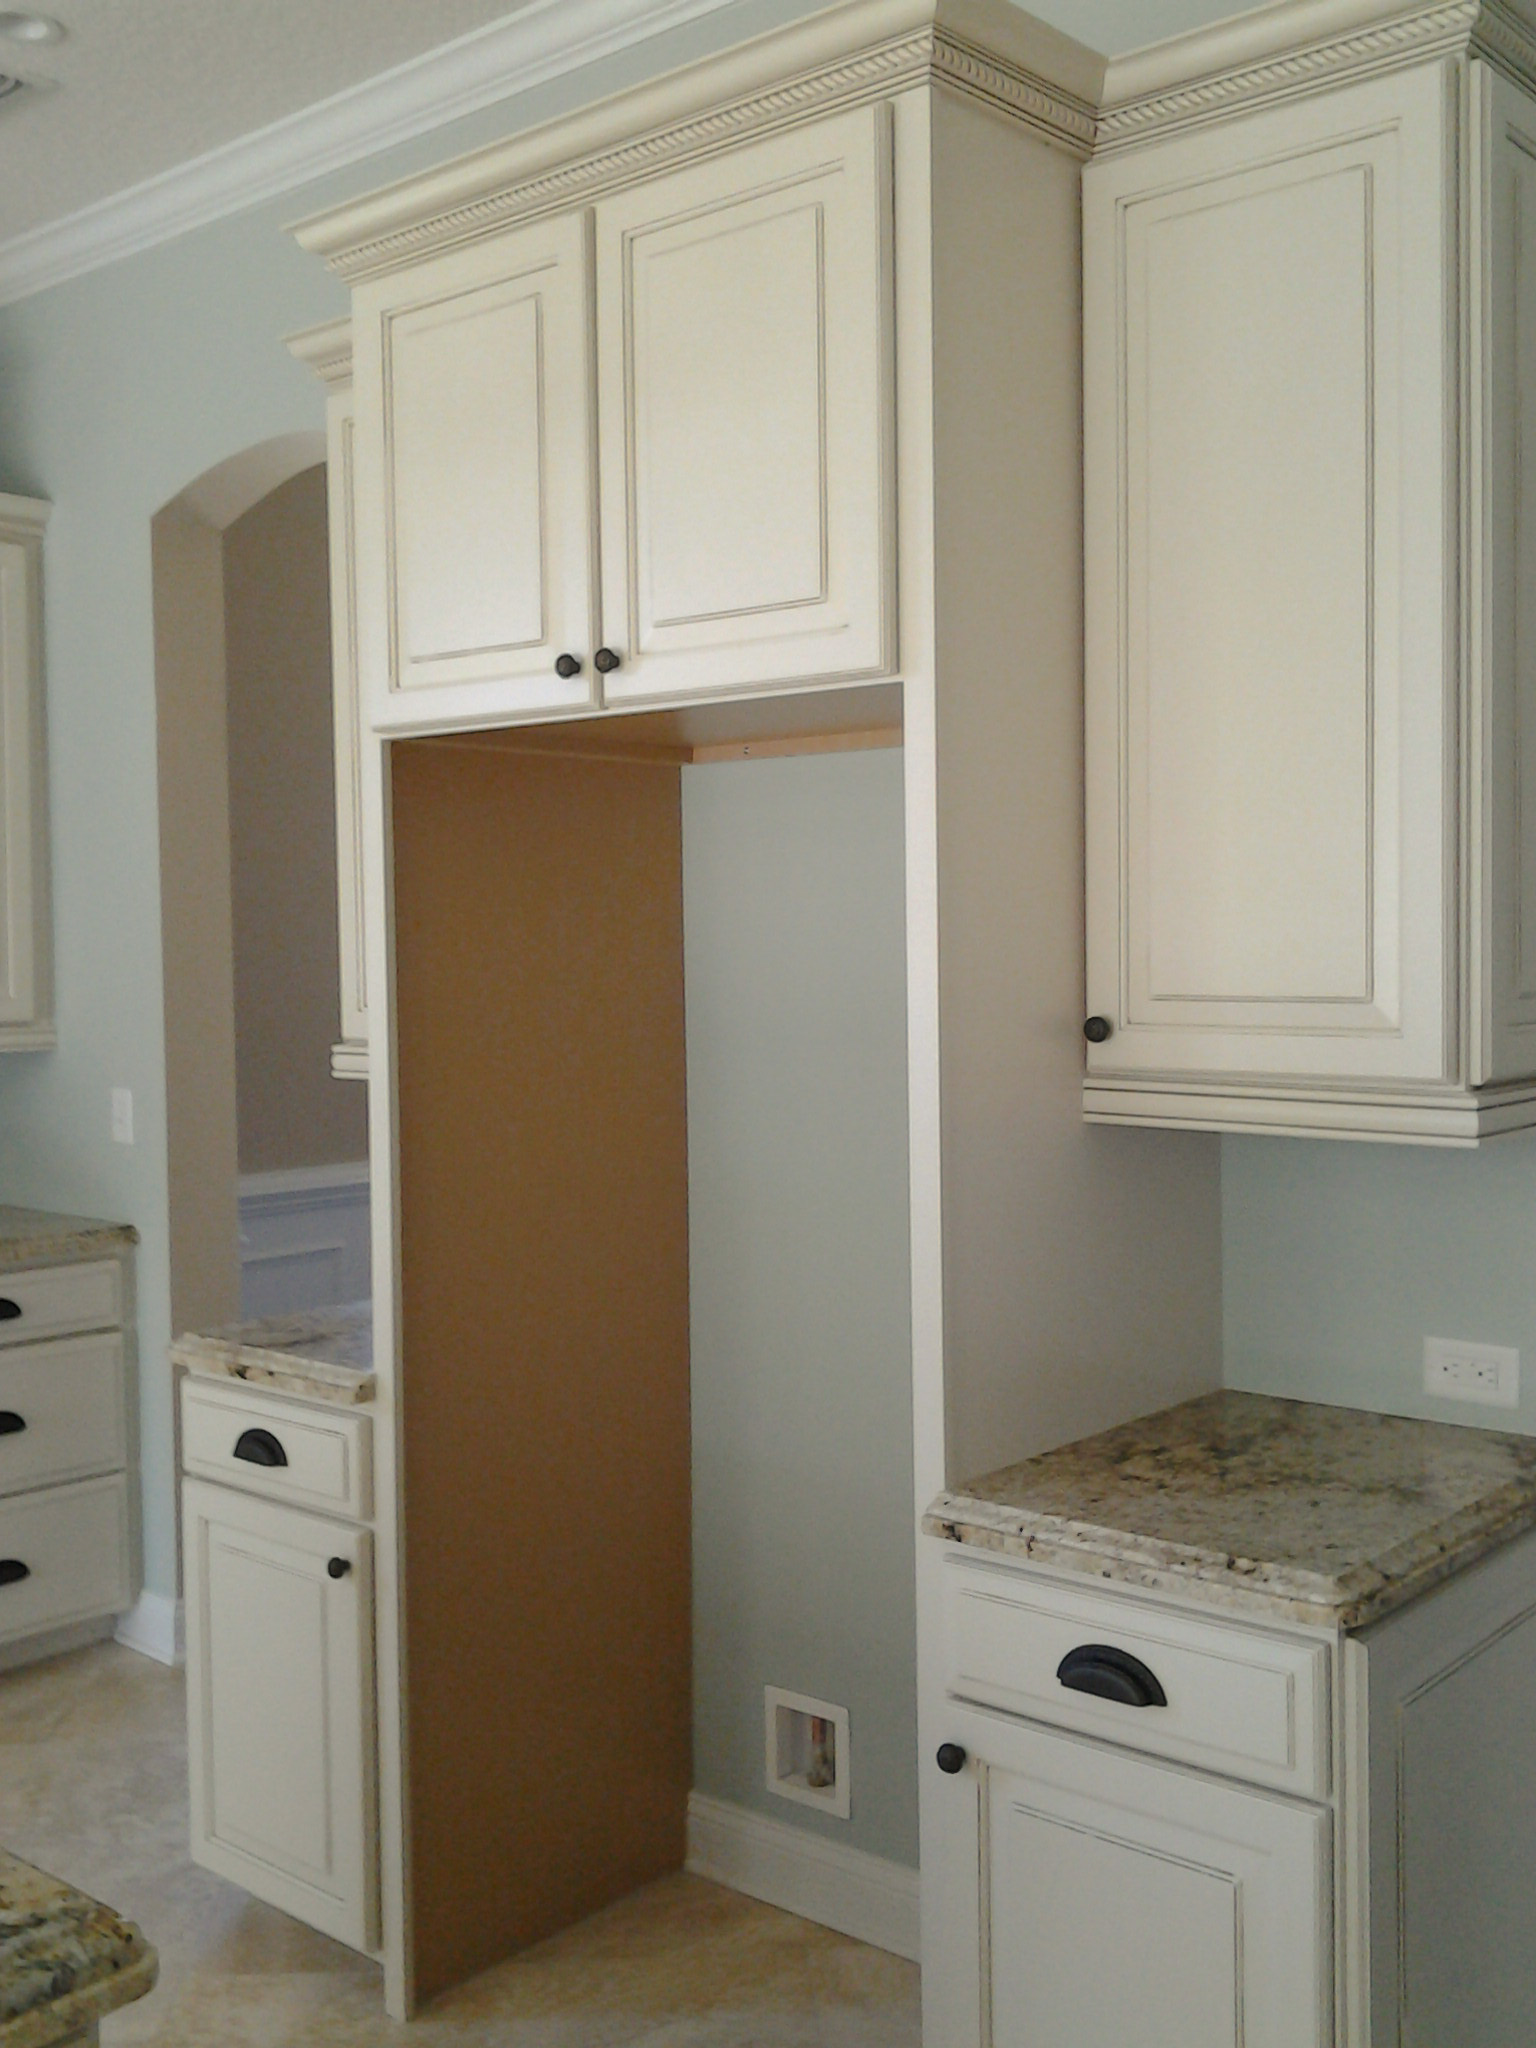 Kitchen Cabinet Doors Jacksonville Fl Kitchen Cabinets Contractors Jacksonville Florida